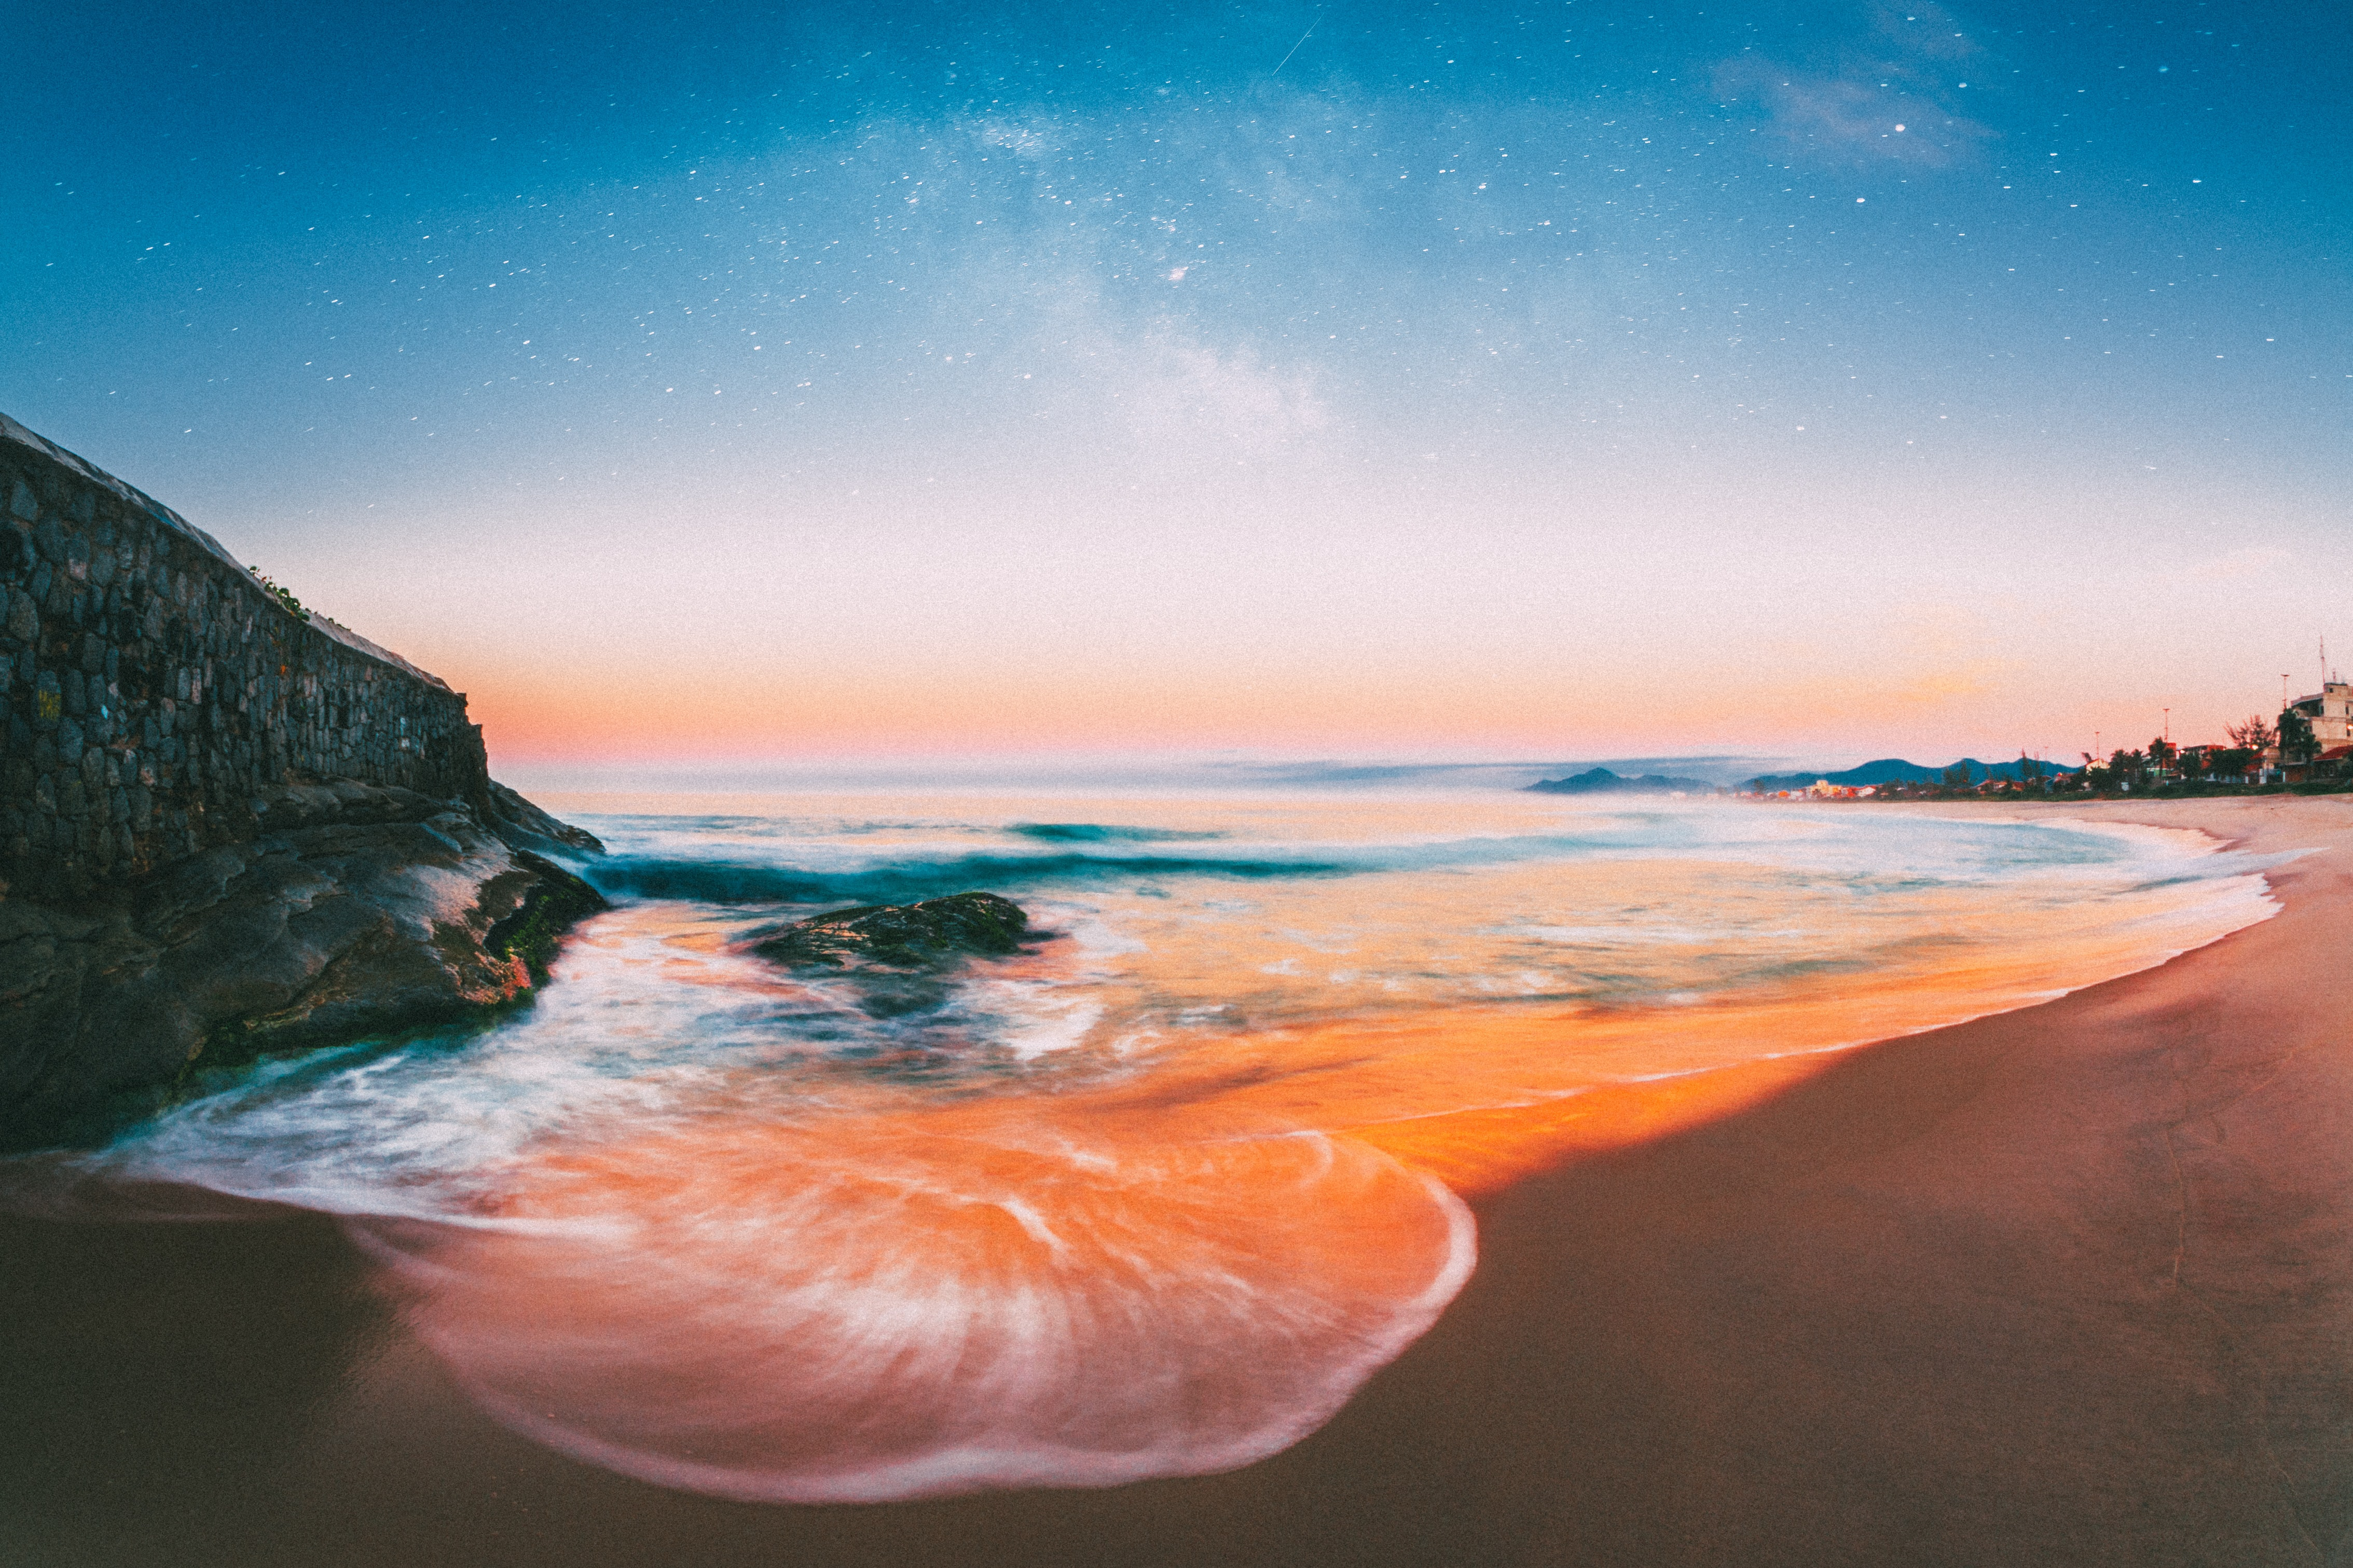 time-lapse photography of waves on shore